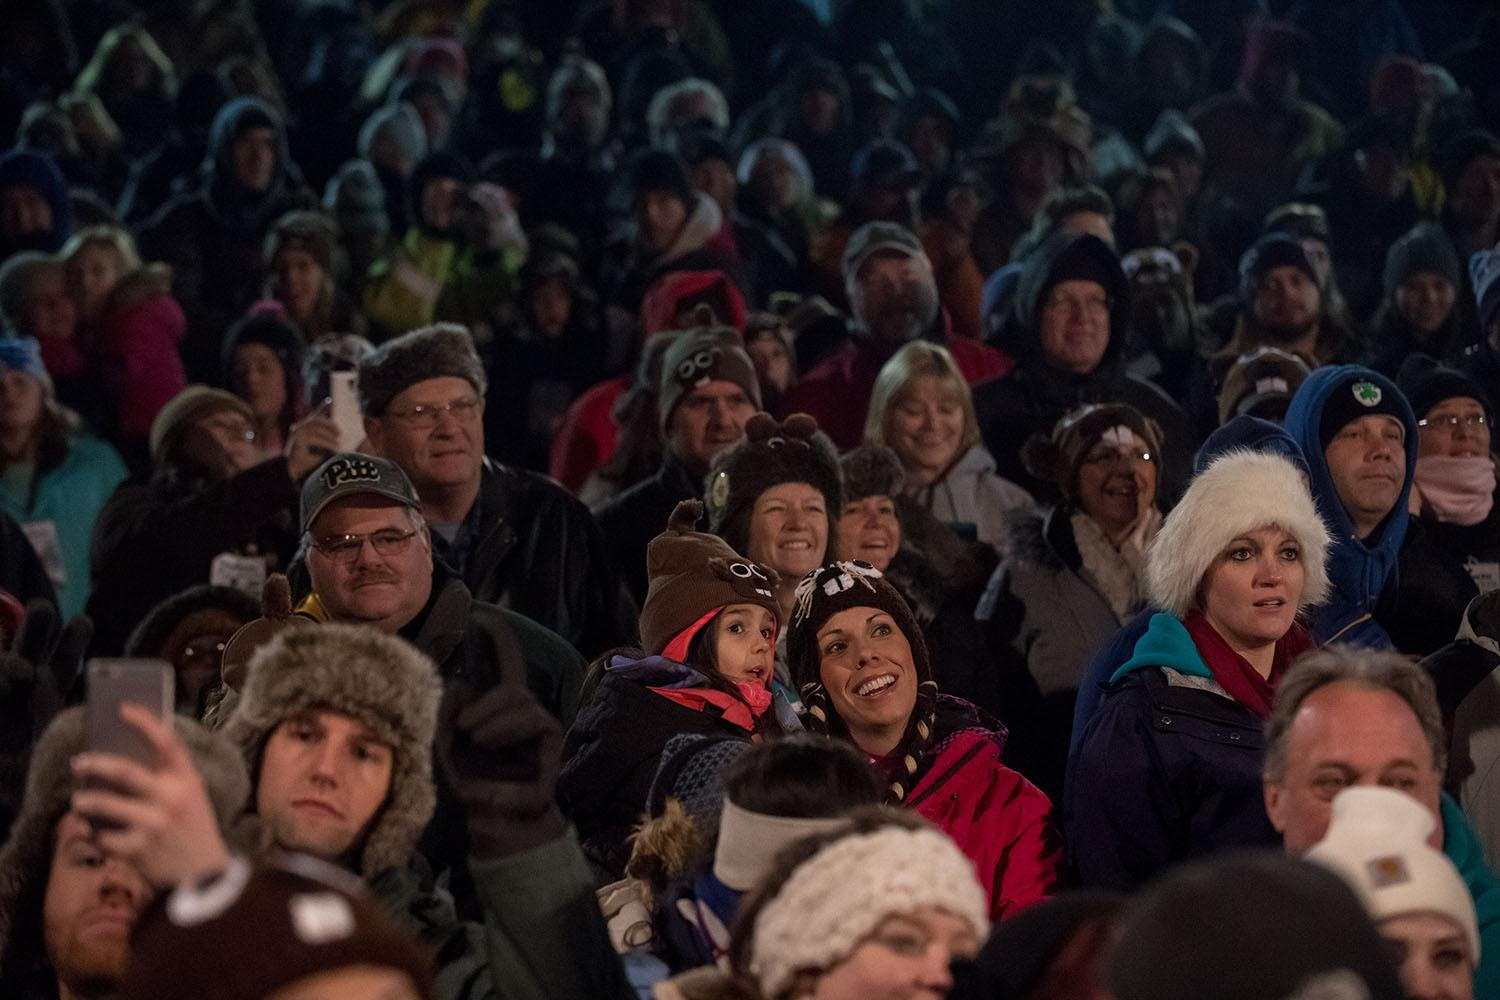 <p>The crowd gathers during the Groundhog Day festivities, where Punxsutawney Phil saw his shadow, predicting six more weeks of winter during 131st annual Groundhog Day festivities on Feb. 2, 2017, in Punxsutawney, Pa. (Jeff Swensen/Getty Images) </p>